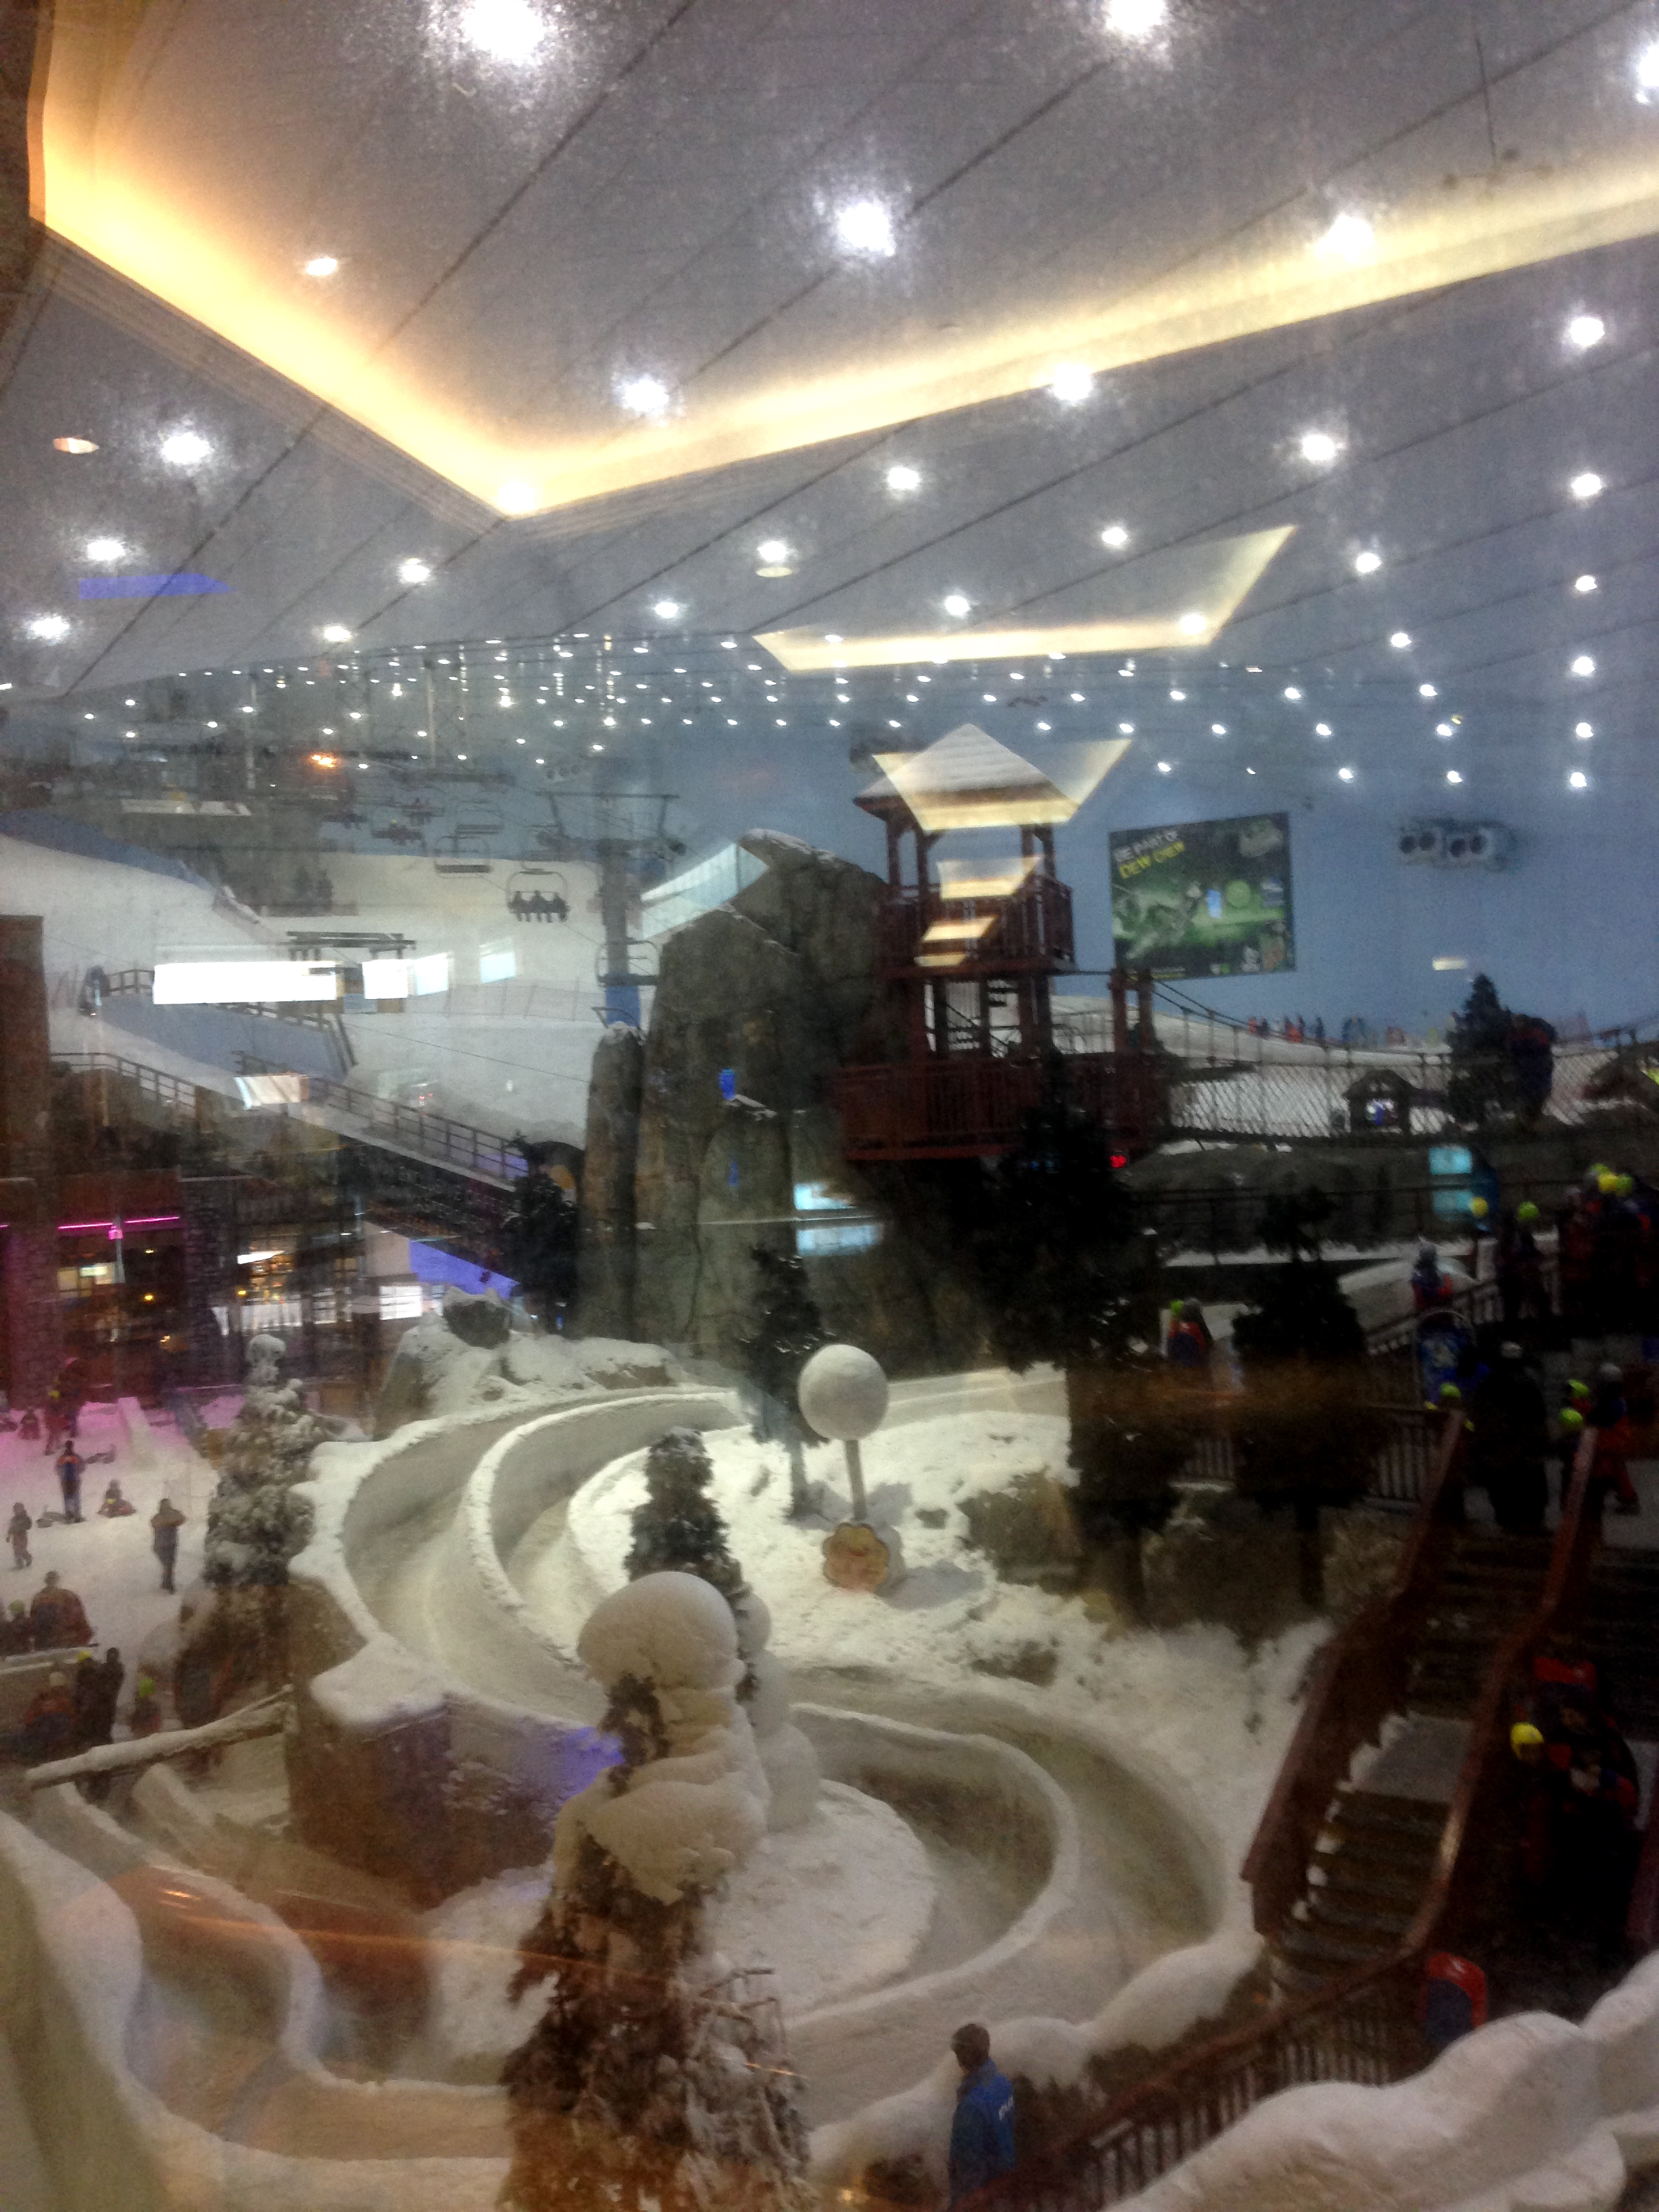 The famous Ski Dubai...hip surgery prevented me from trying it out. Someday...